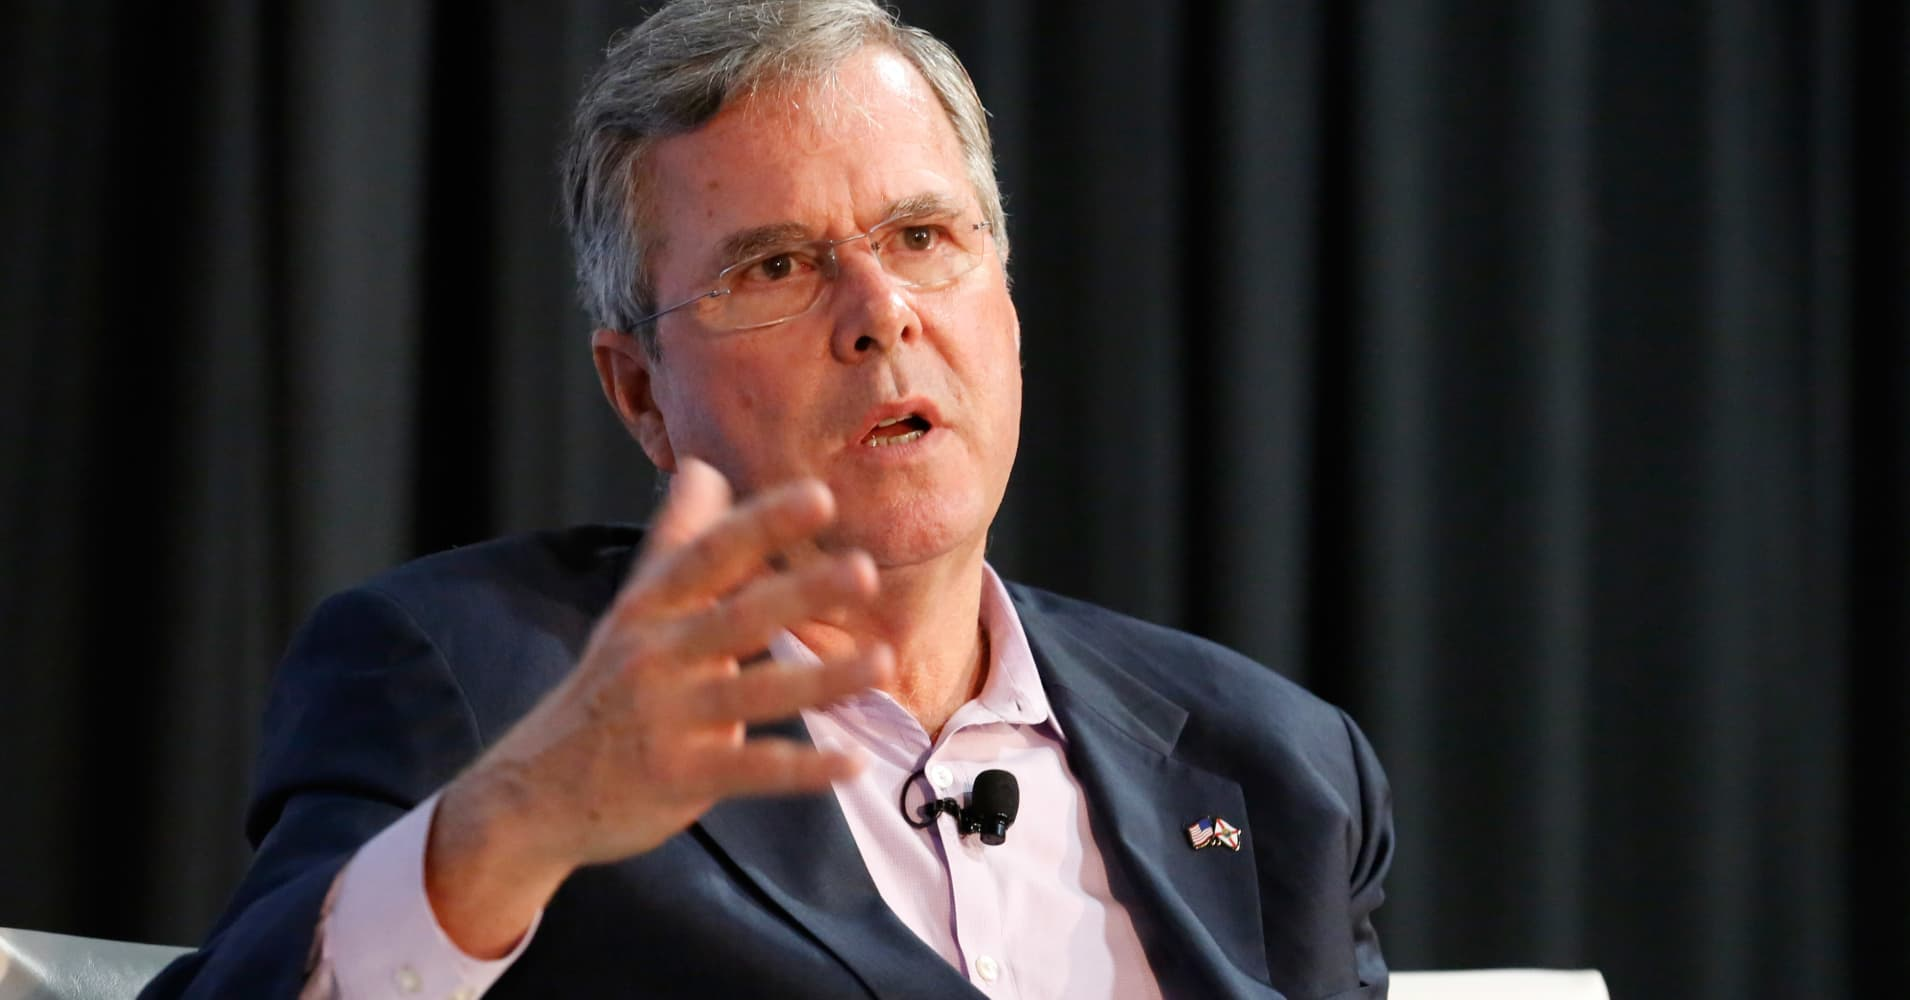 Jeb Bush: 'I don't know' if I'd ever run again, but I'd never do what Trump did to get elected